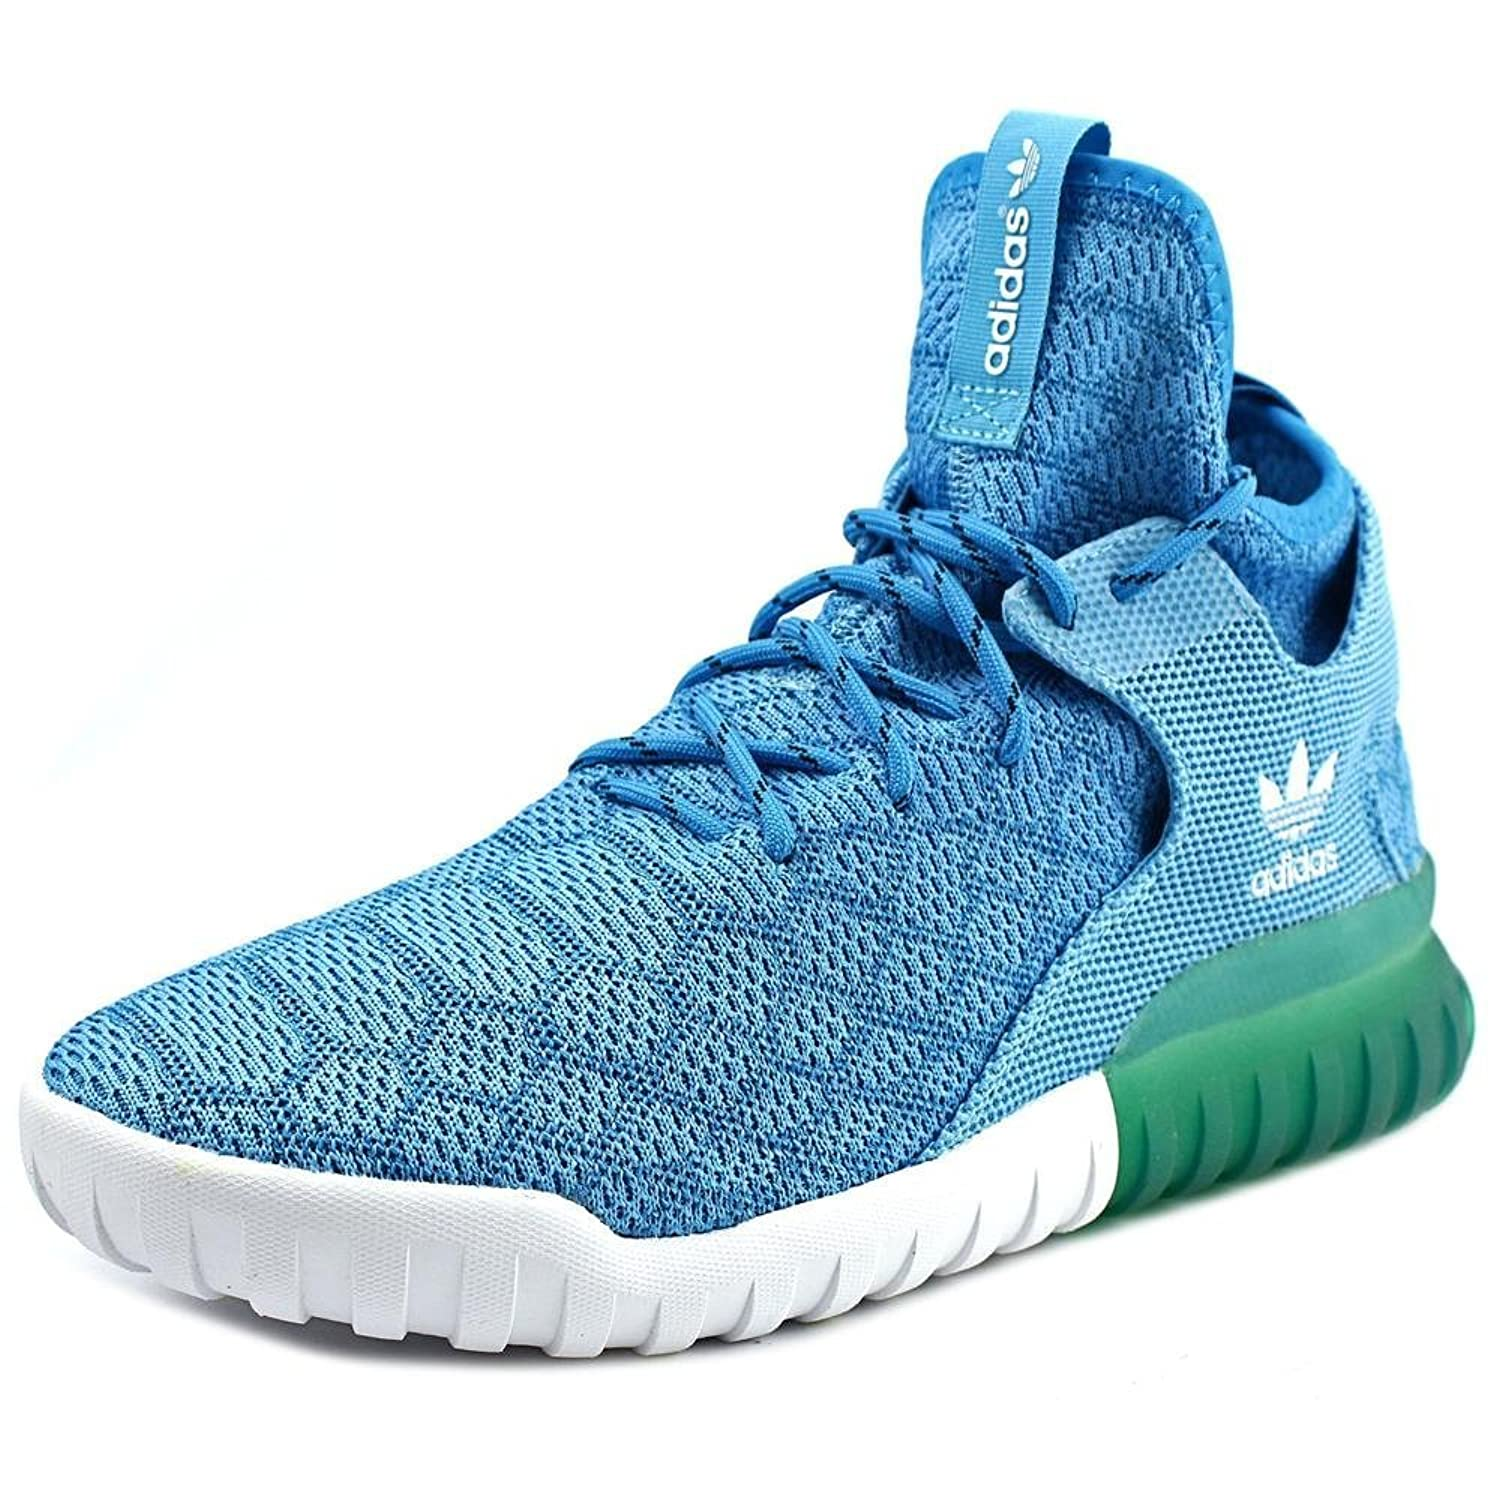 adidas Men's Tubular X PK Basketball Shoes.uk: Shoes